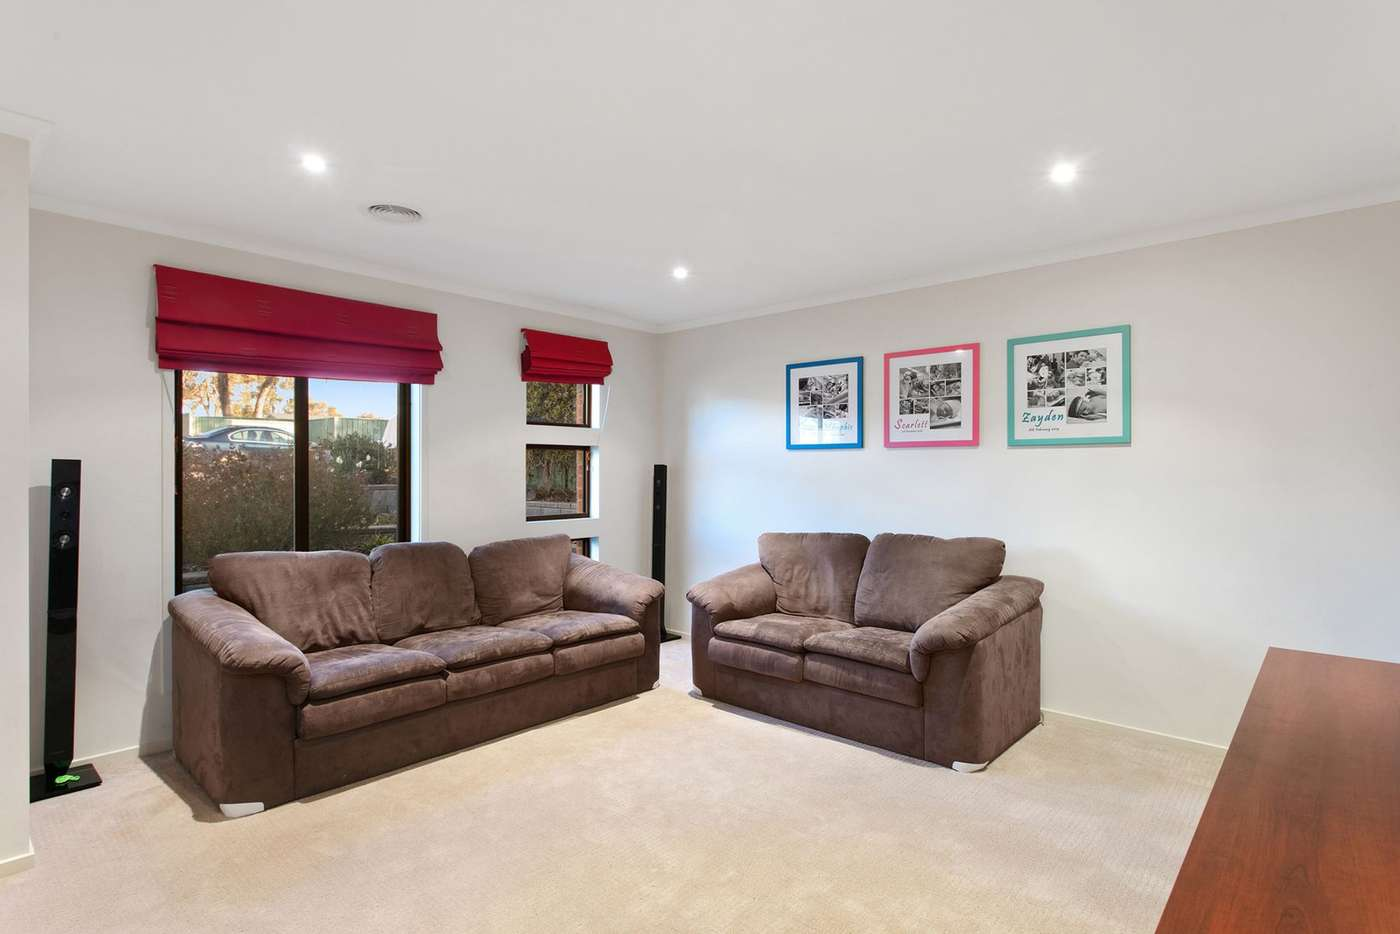 Fifth view of Homely house listing, 42 Glenelg Drive, Maiden Gully VIC 3551